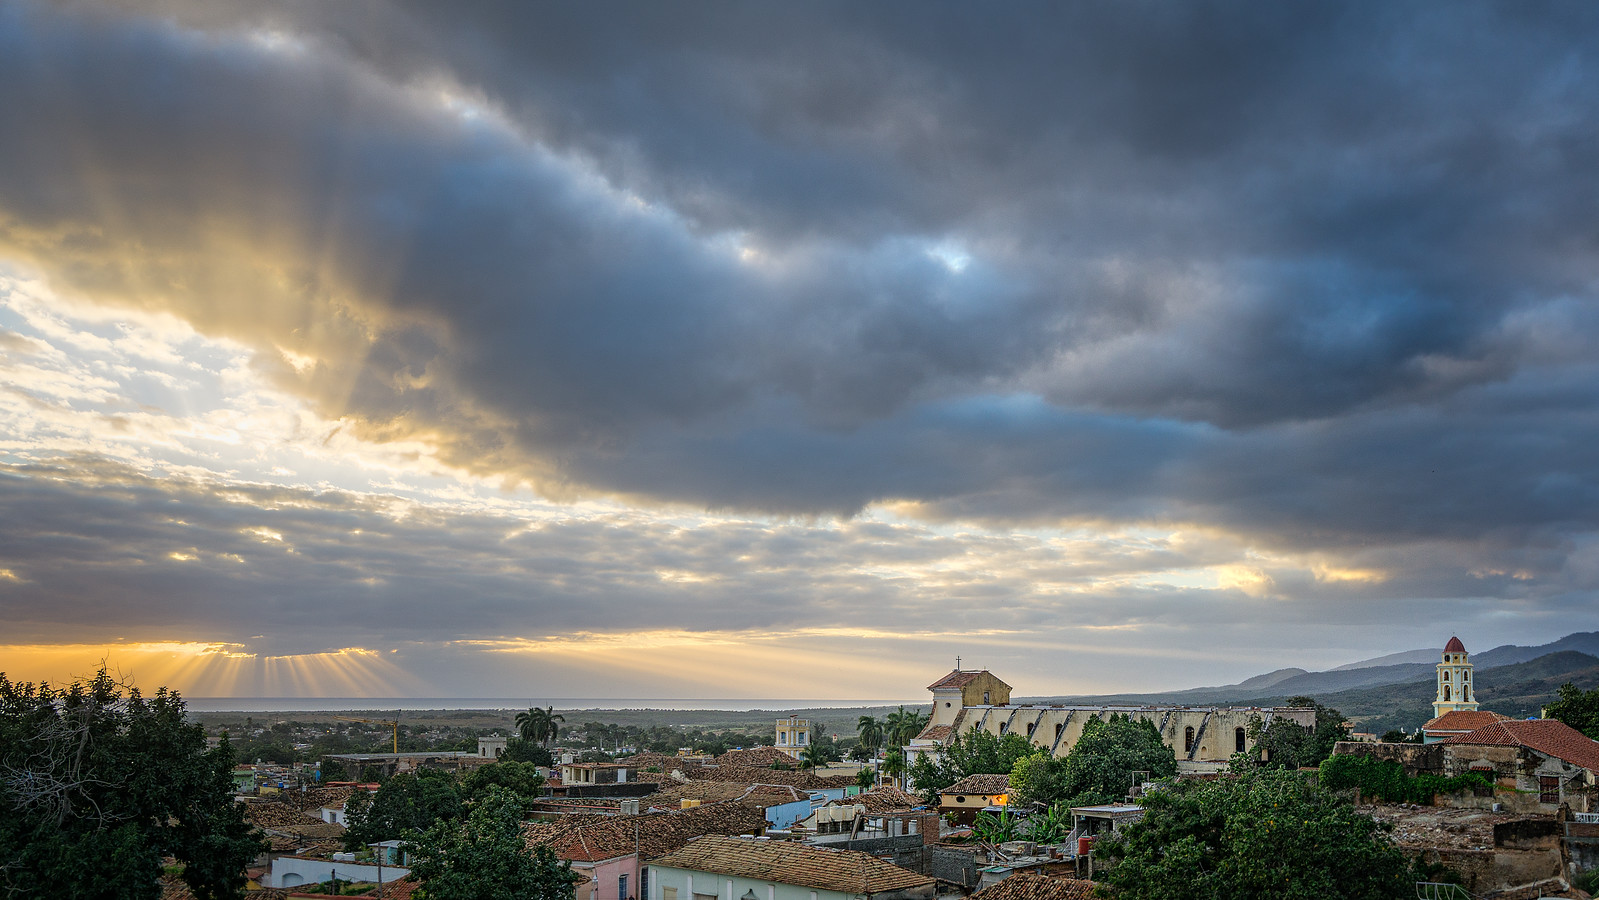 God Rays over Trinidad Cuba from Kevin Wenning at Intentionally Lost #intentionallylost